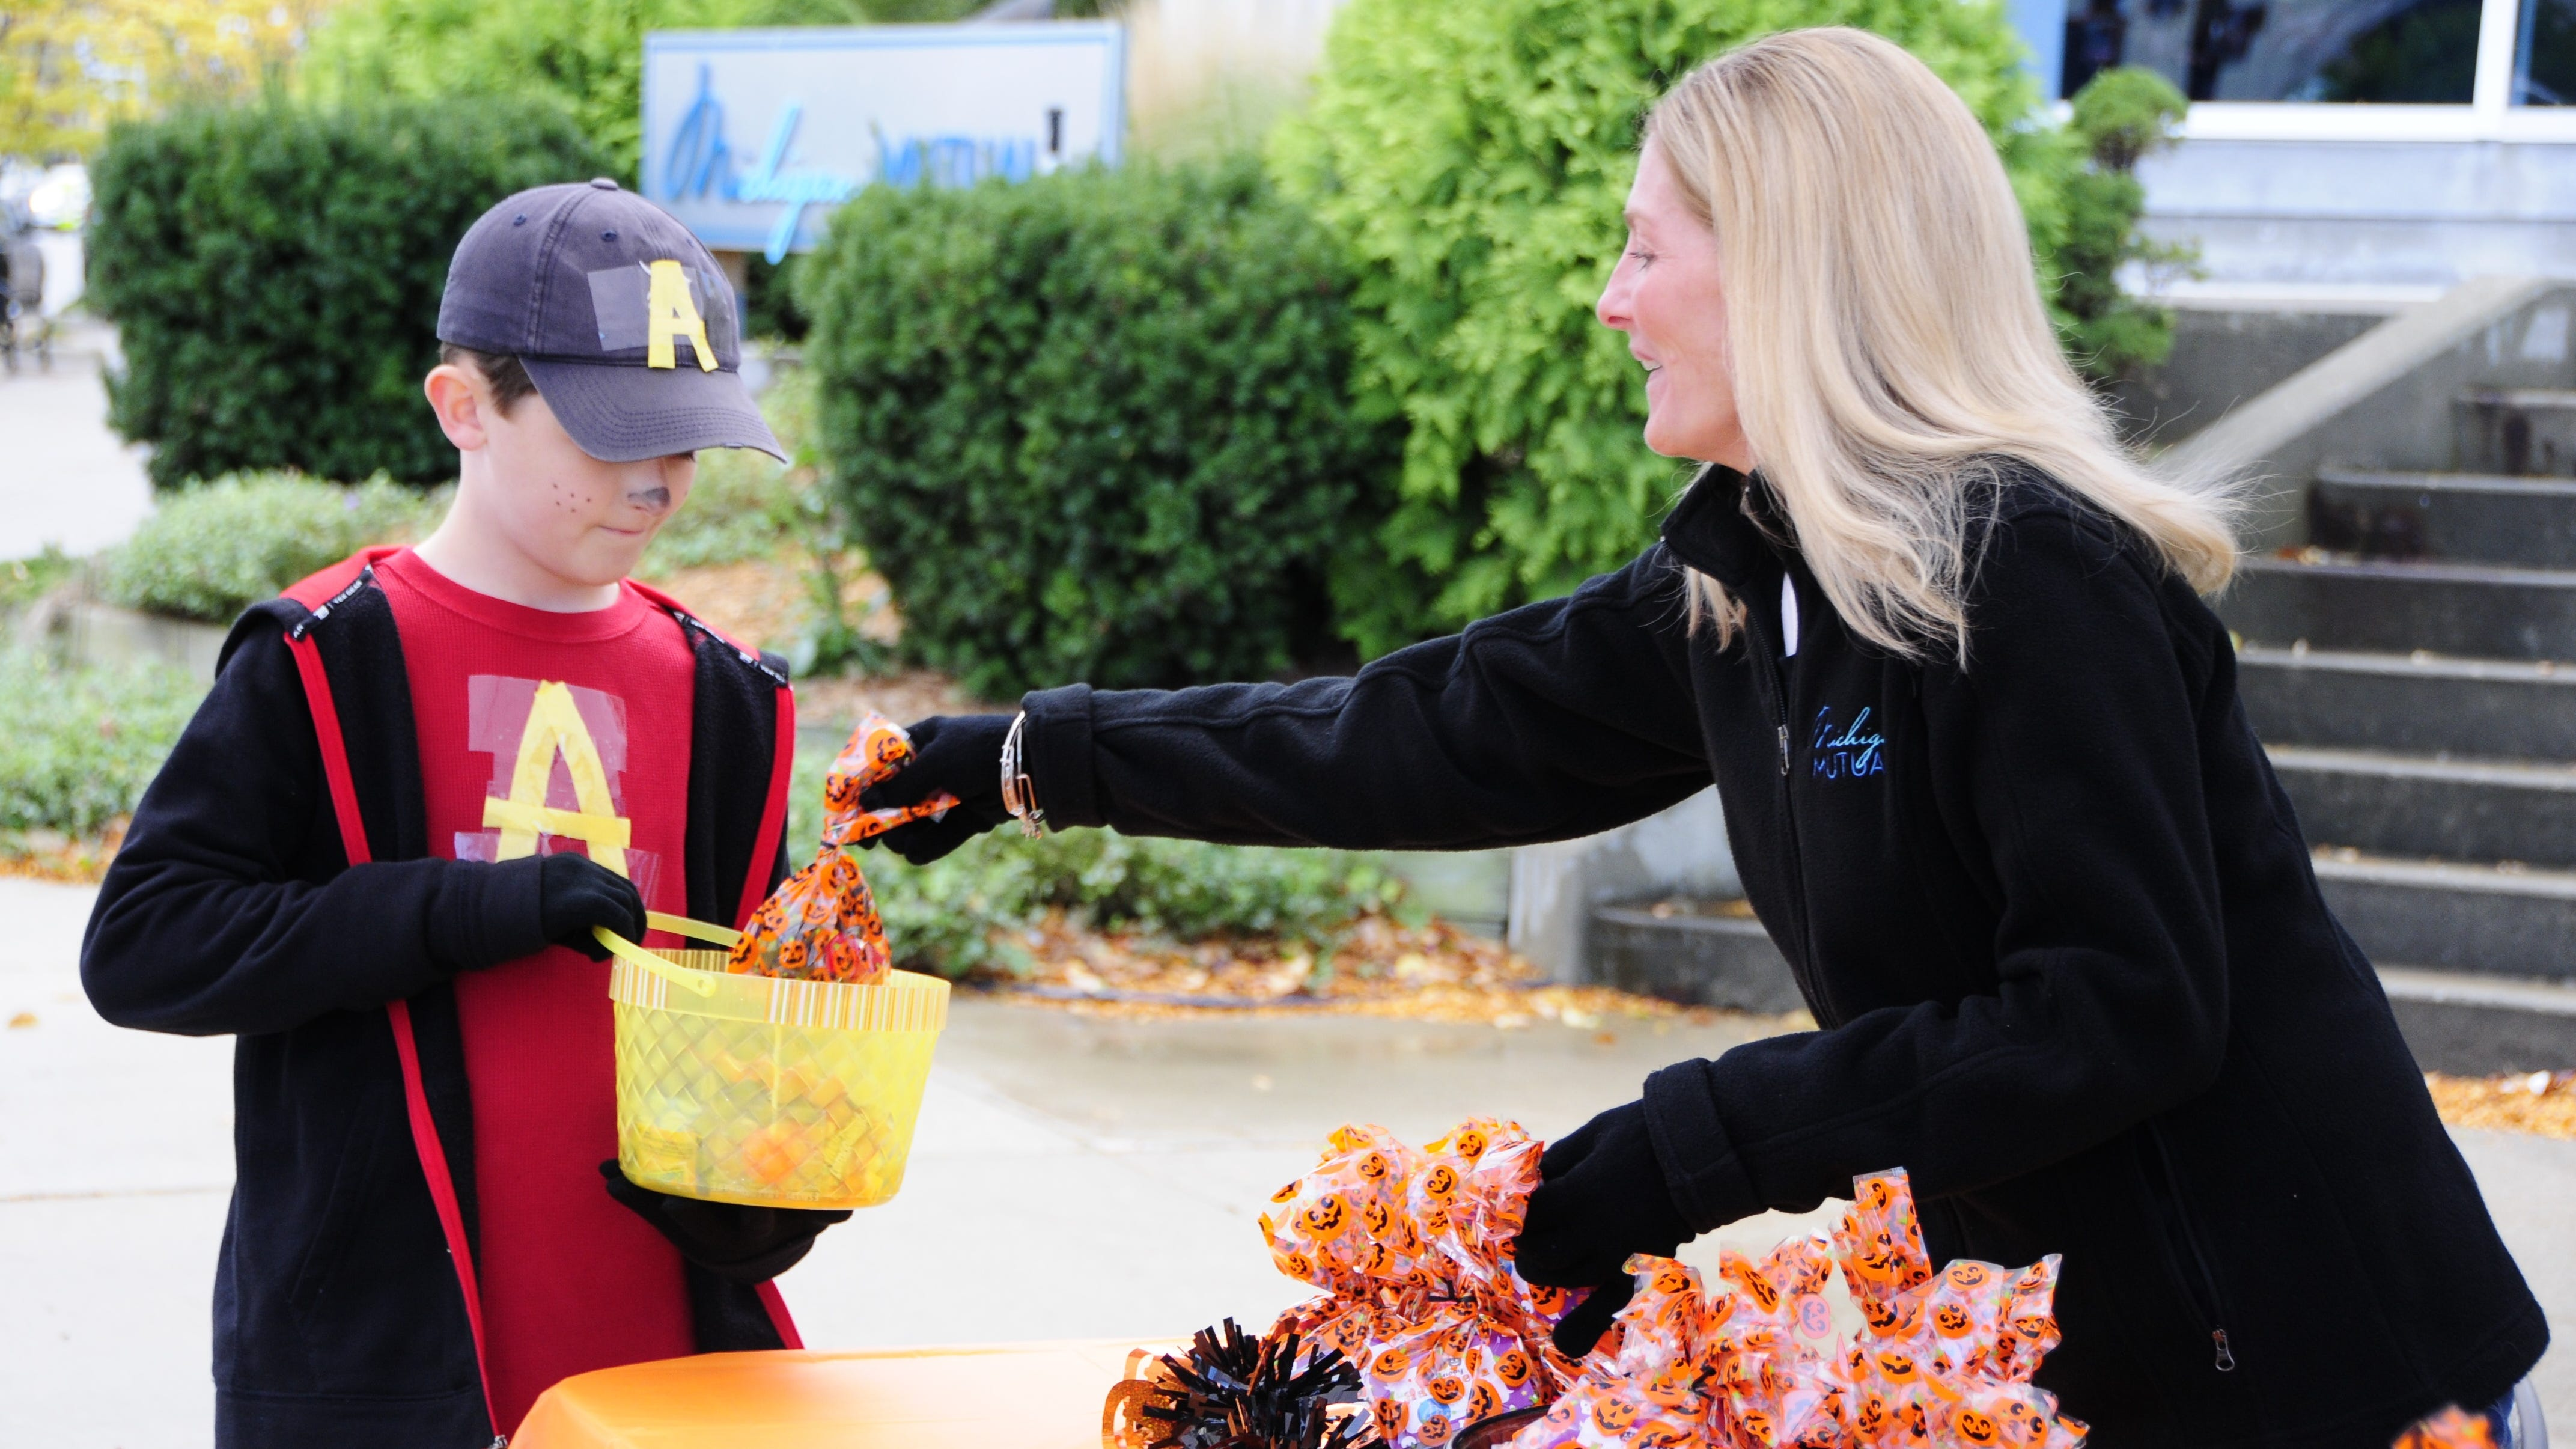 Audrey Torello of Michigan Mutual hands a bag of candy to Xander Koch, 10, of St. Clair during Truck-or-Treat, Saturday, Oct. 20, 2018 in downtown Port Huron.